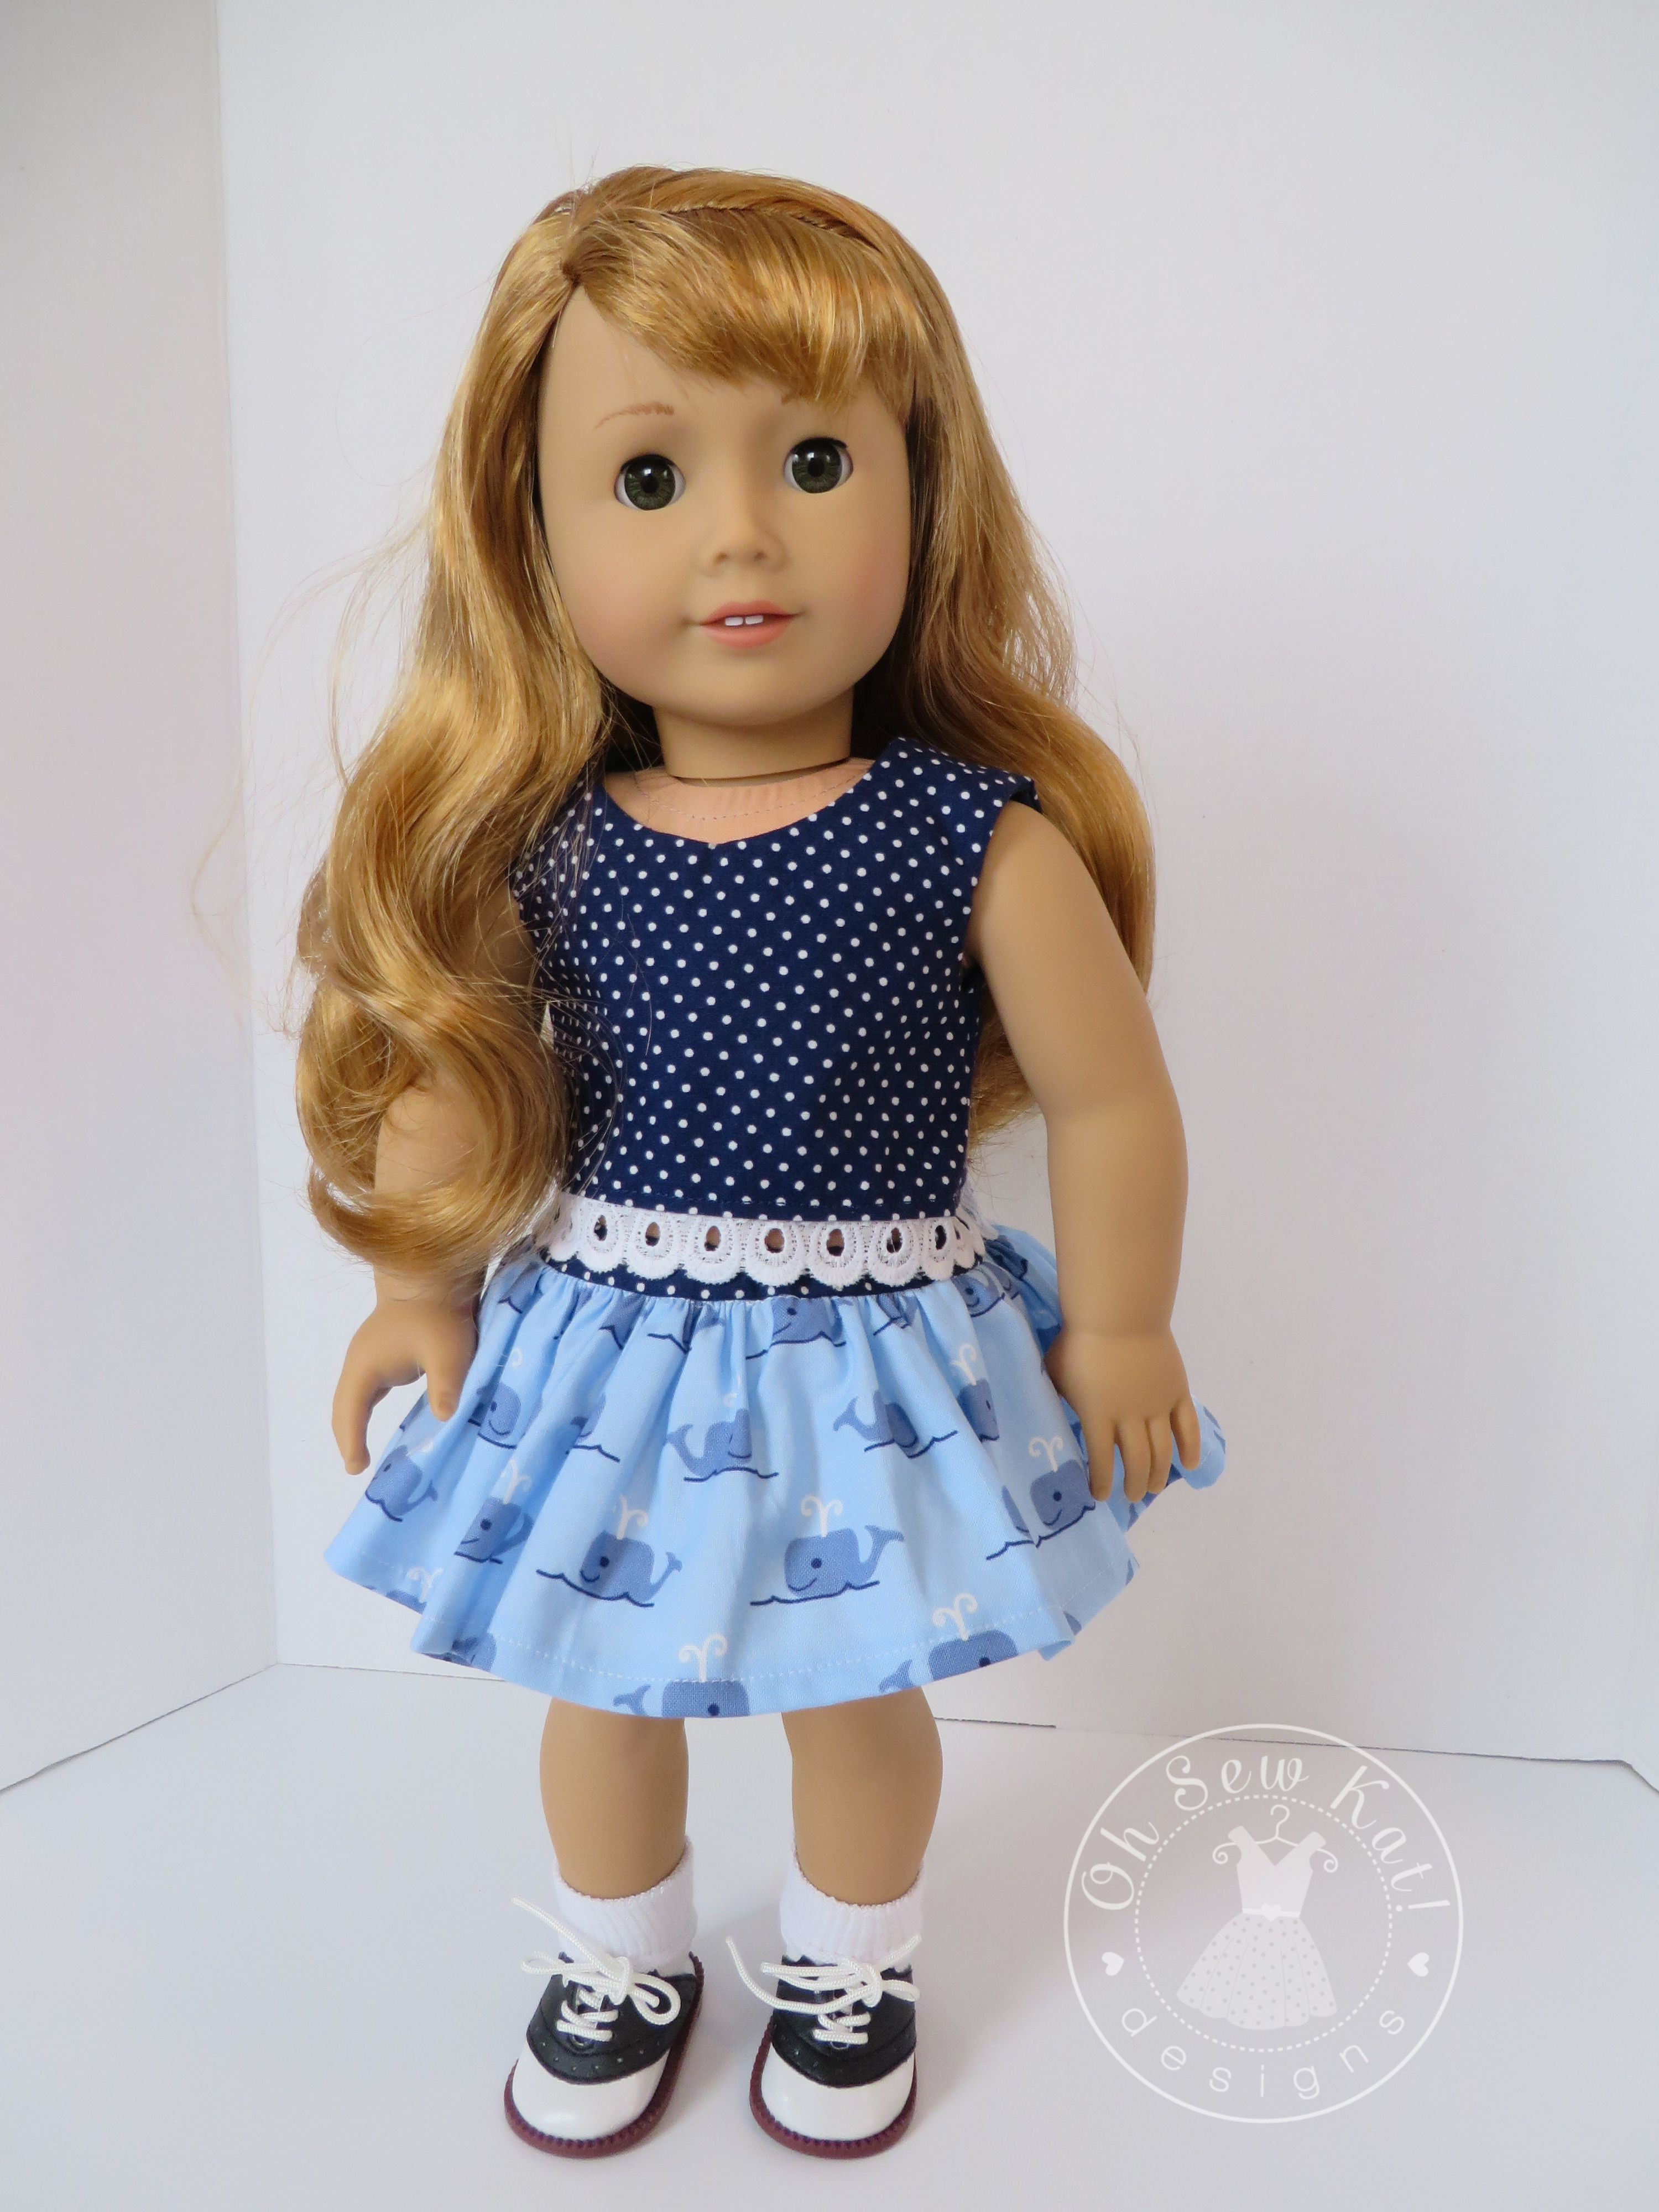 Free skirt pattern for dolls at ohsewkat.com. Easy to sew doll ...